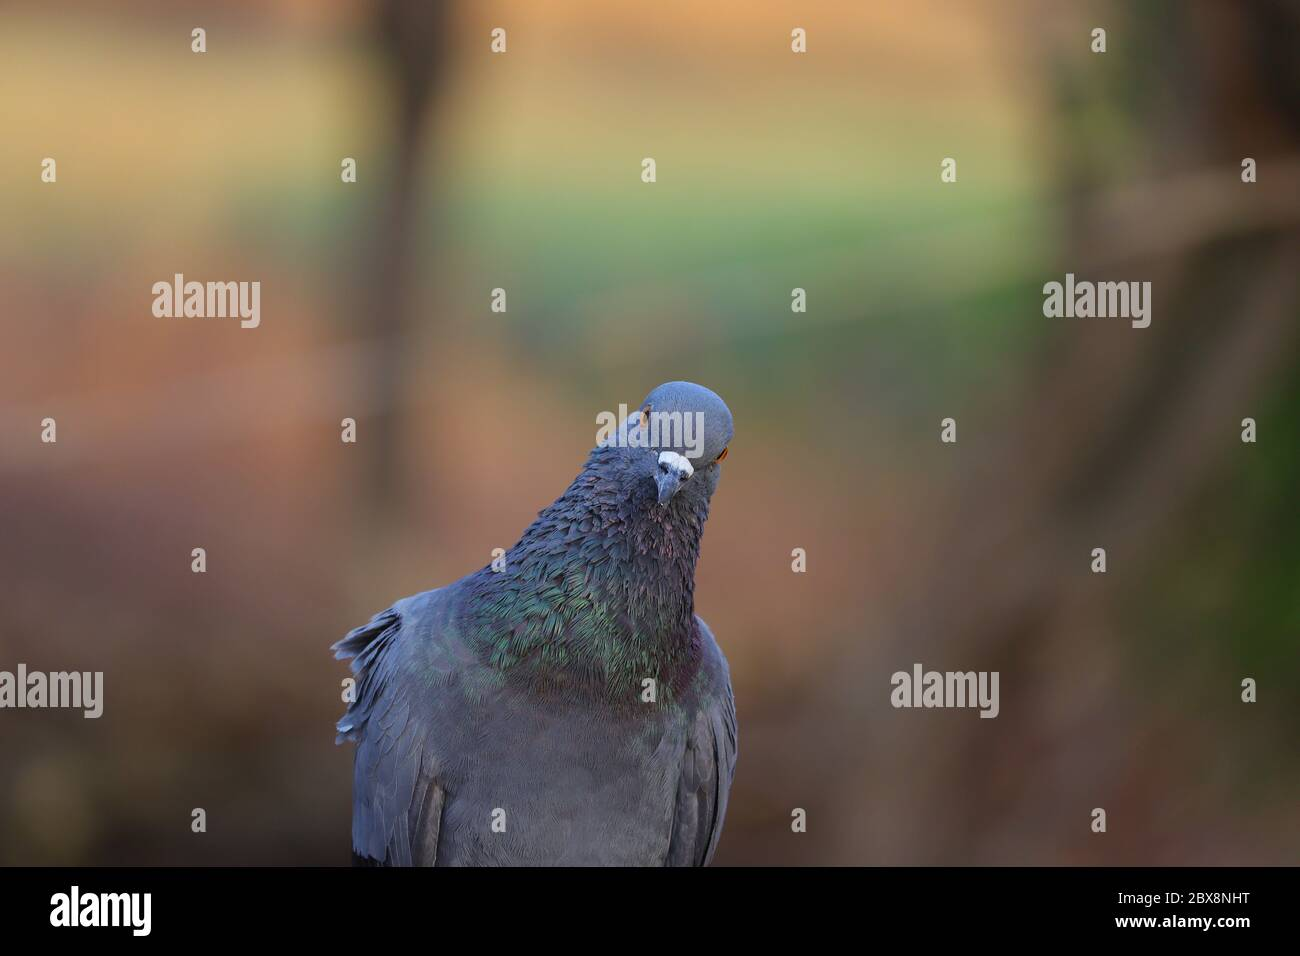 Front View Pigeon Hd Image Free Pigeon Bird Photography Stock Photo Alamy